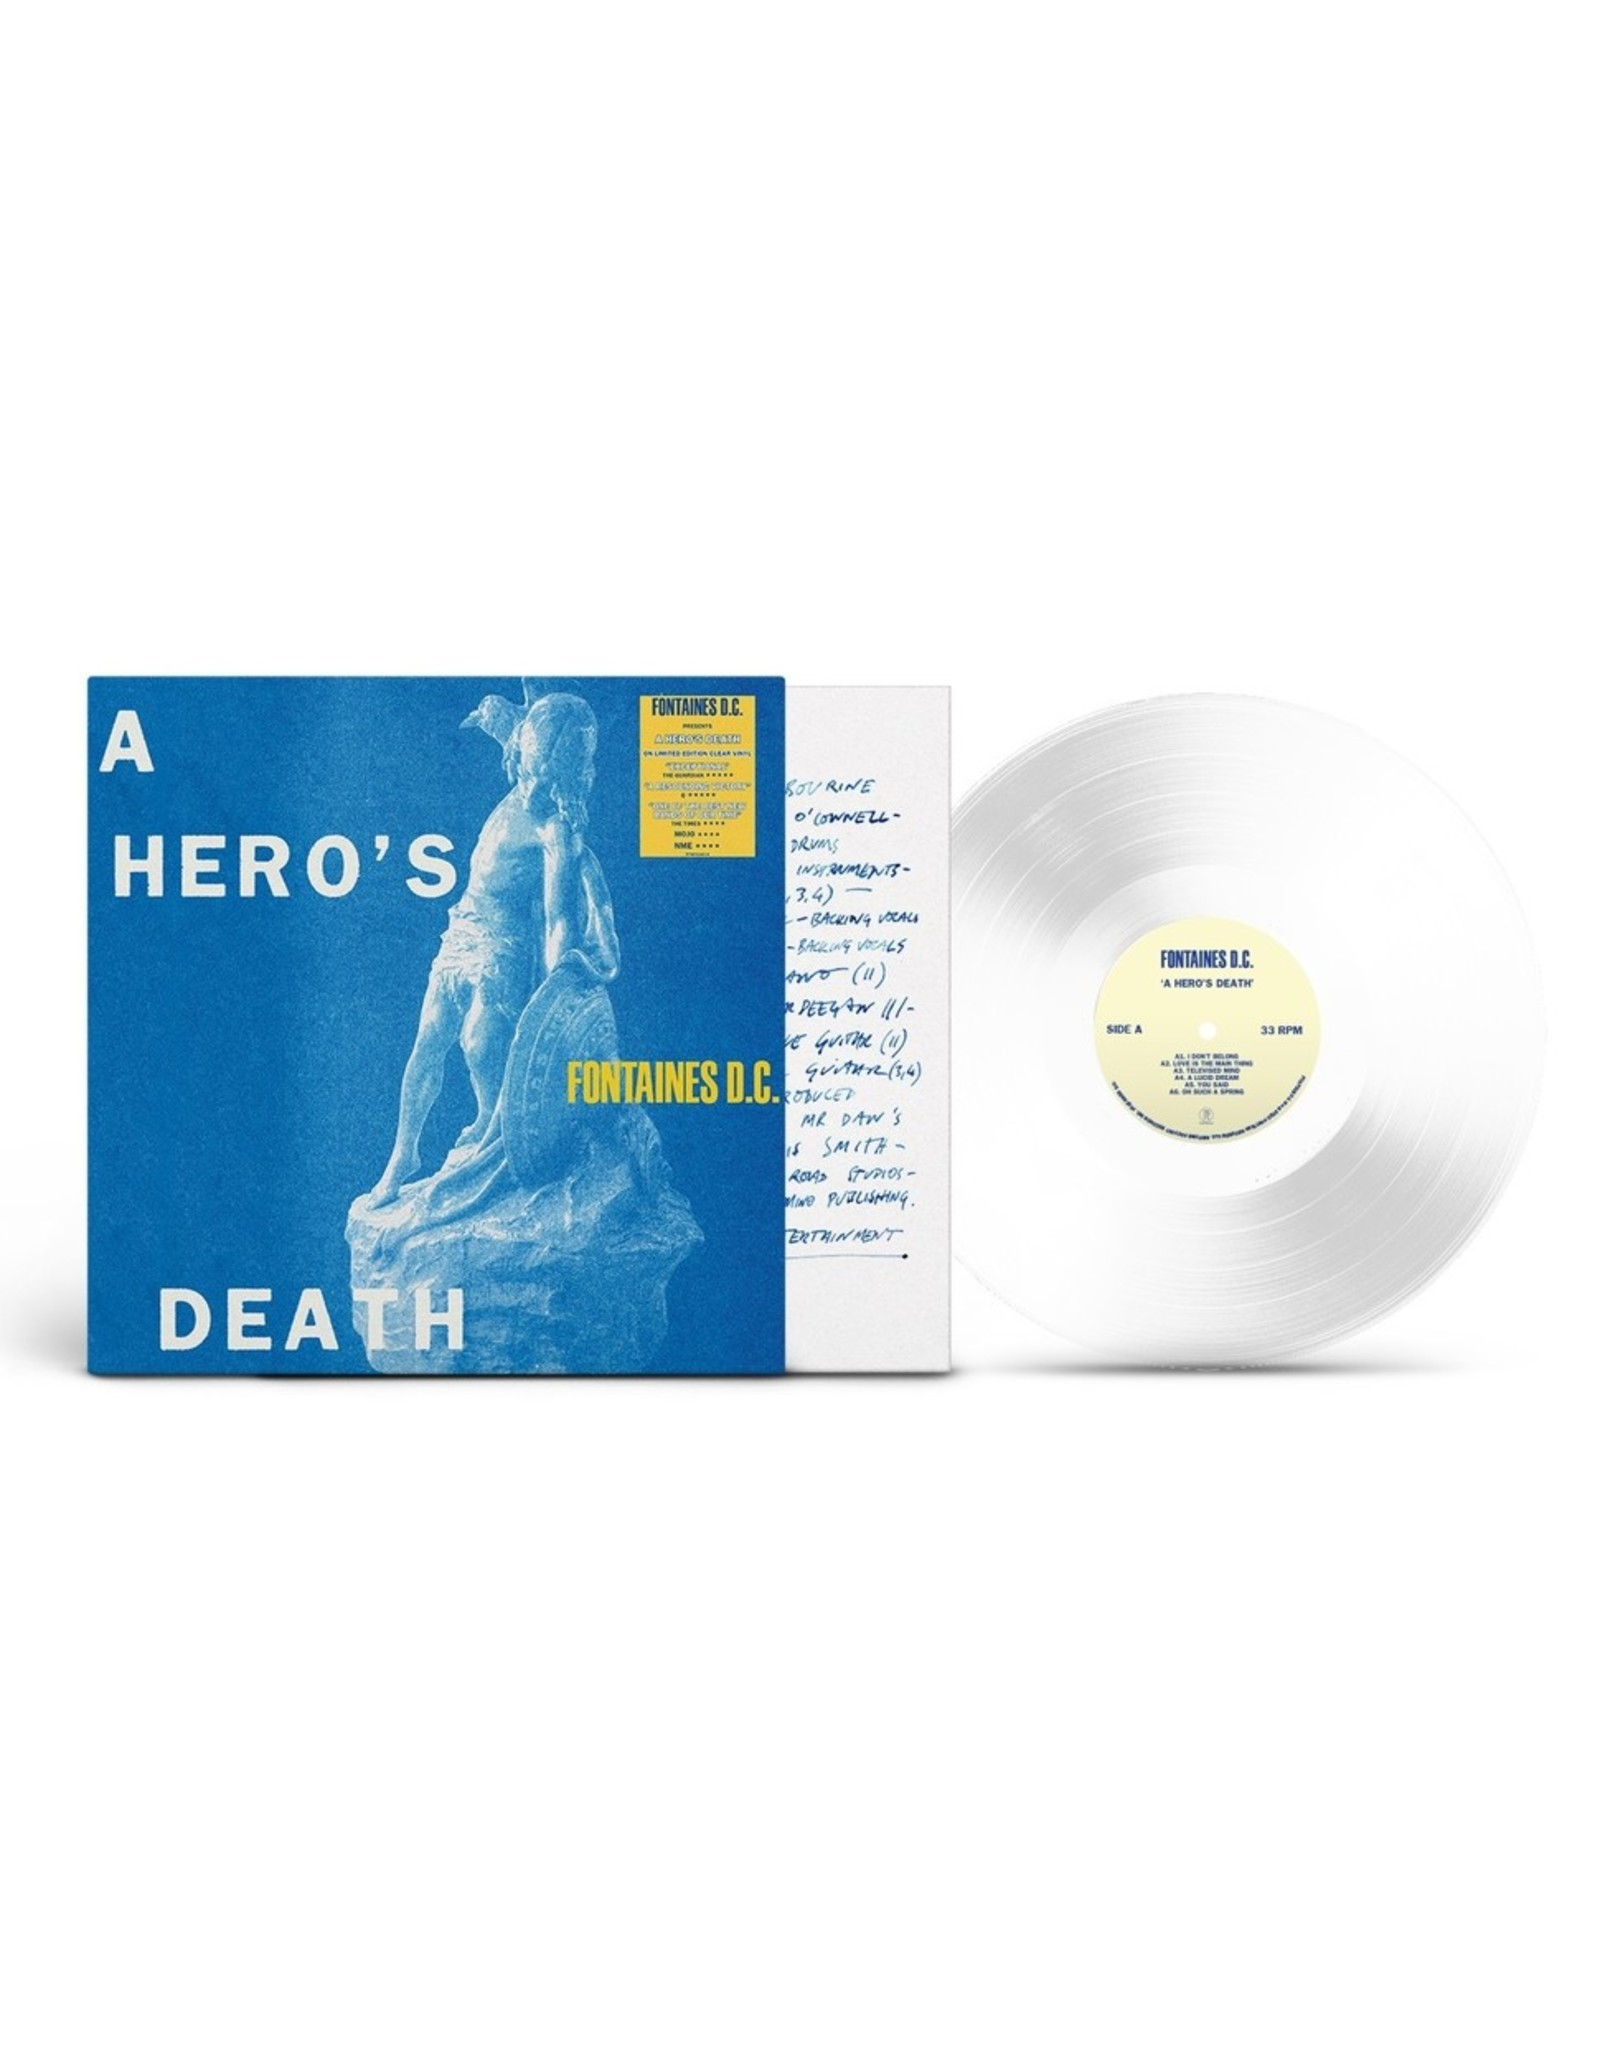 Fontaines D.C. - A Hero's Death (Exclusive Clear Vinyl)